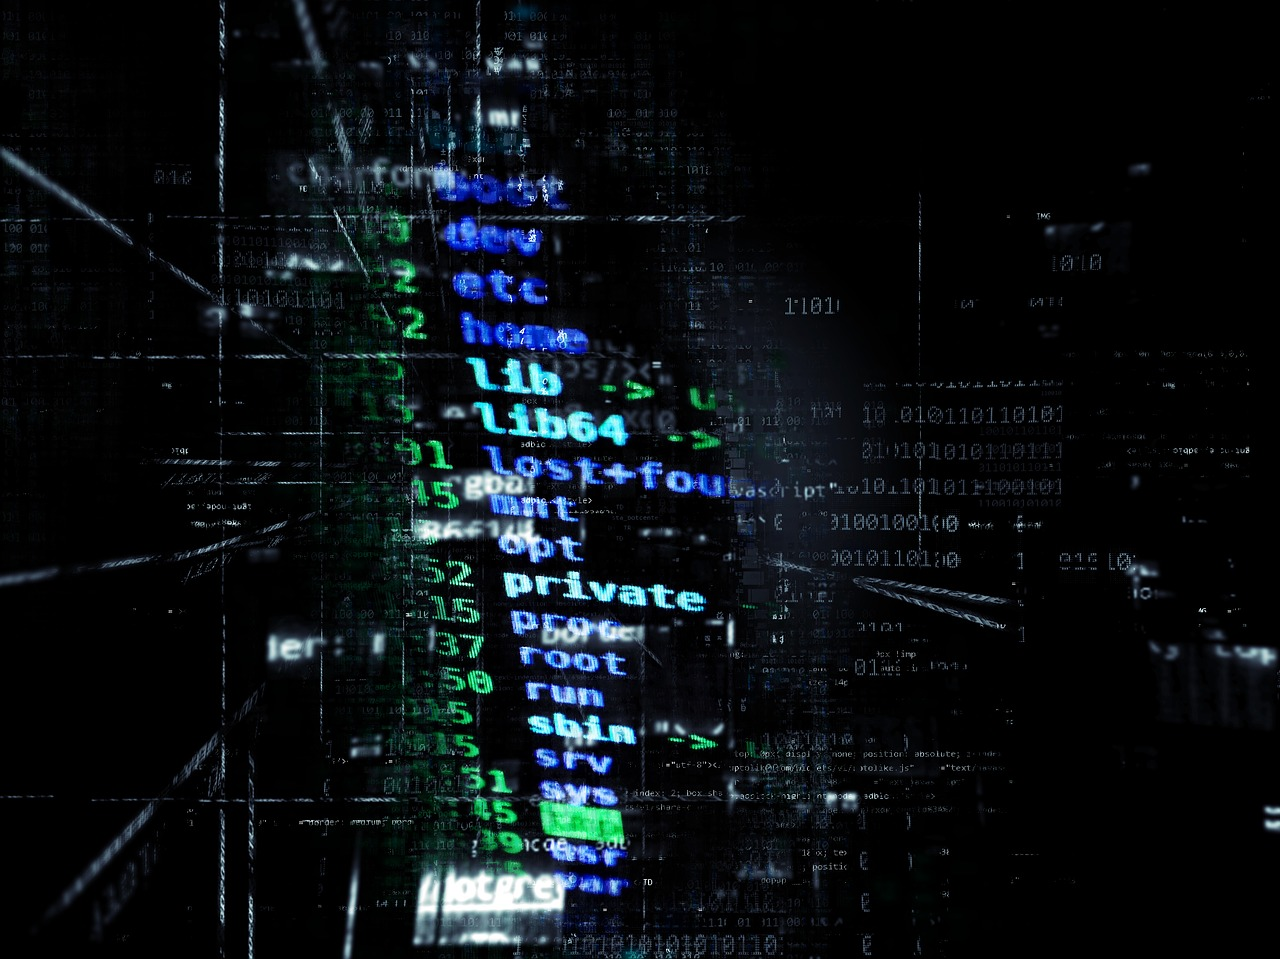 86-percent-increase-in-data-breaches-in-2016-led-to-1.4-billion-data-record-compromised.jpg